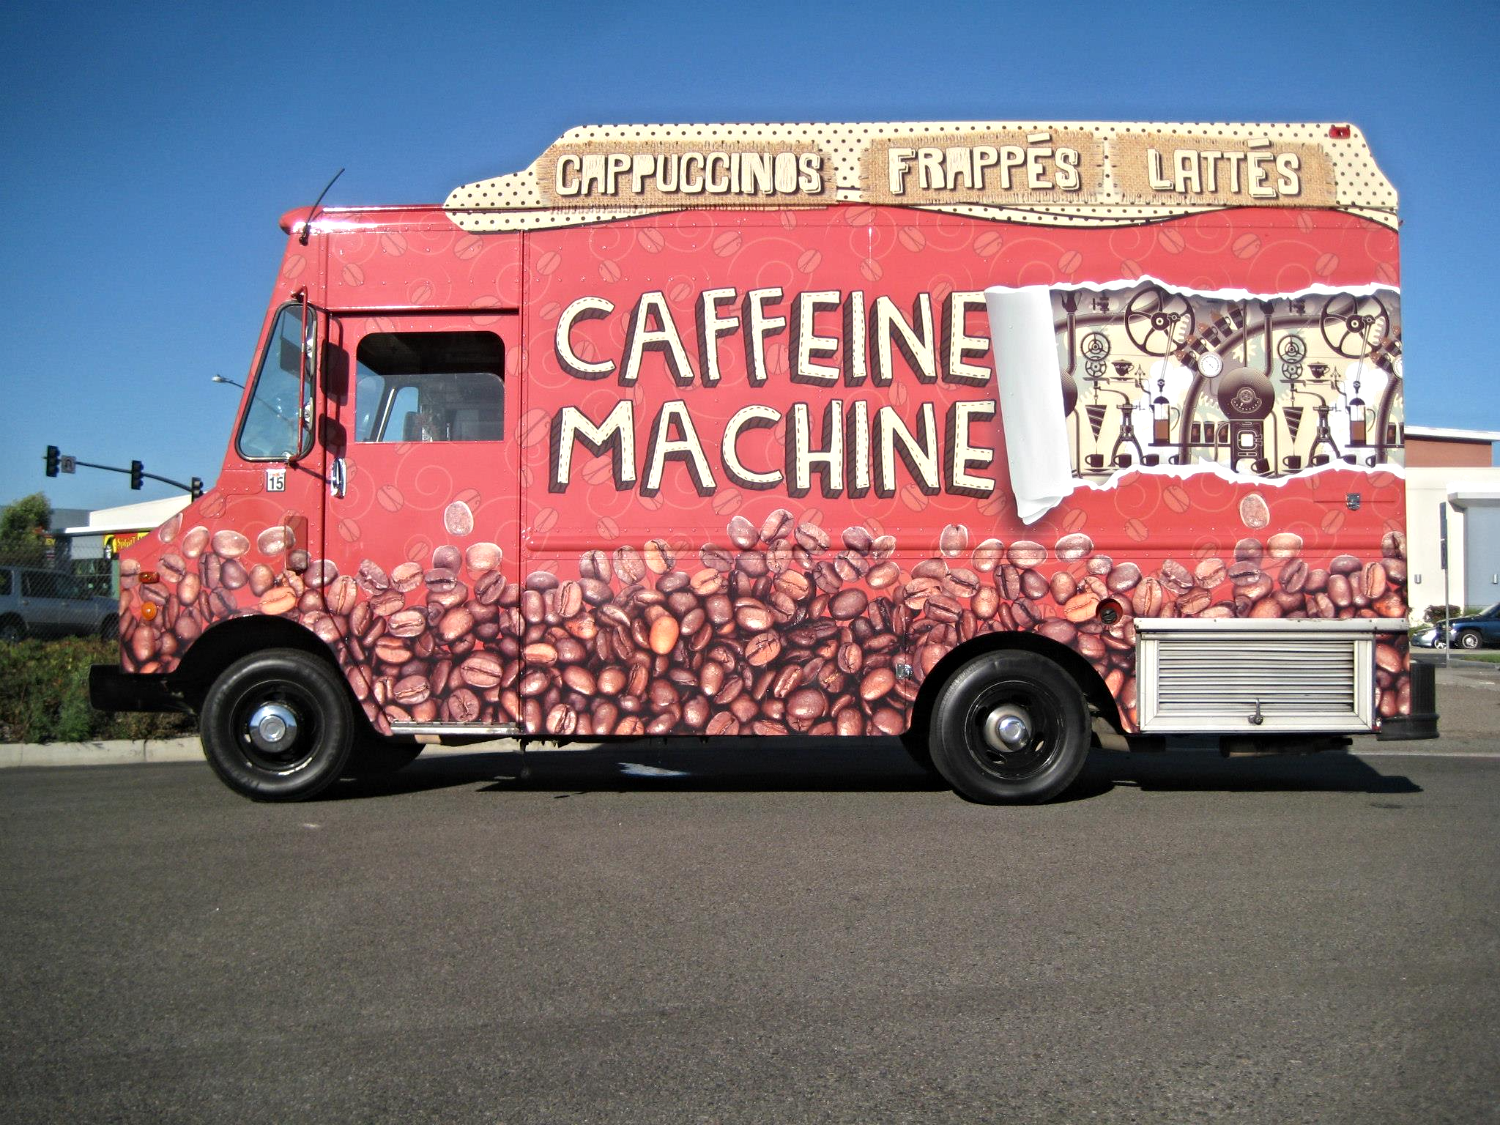 Caffeine Machine